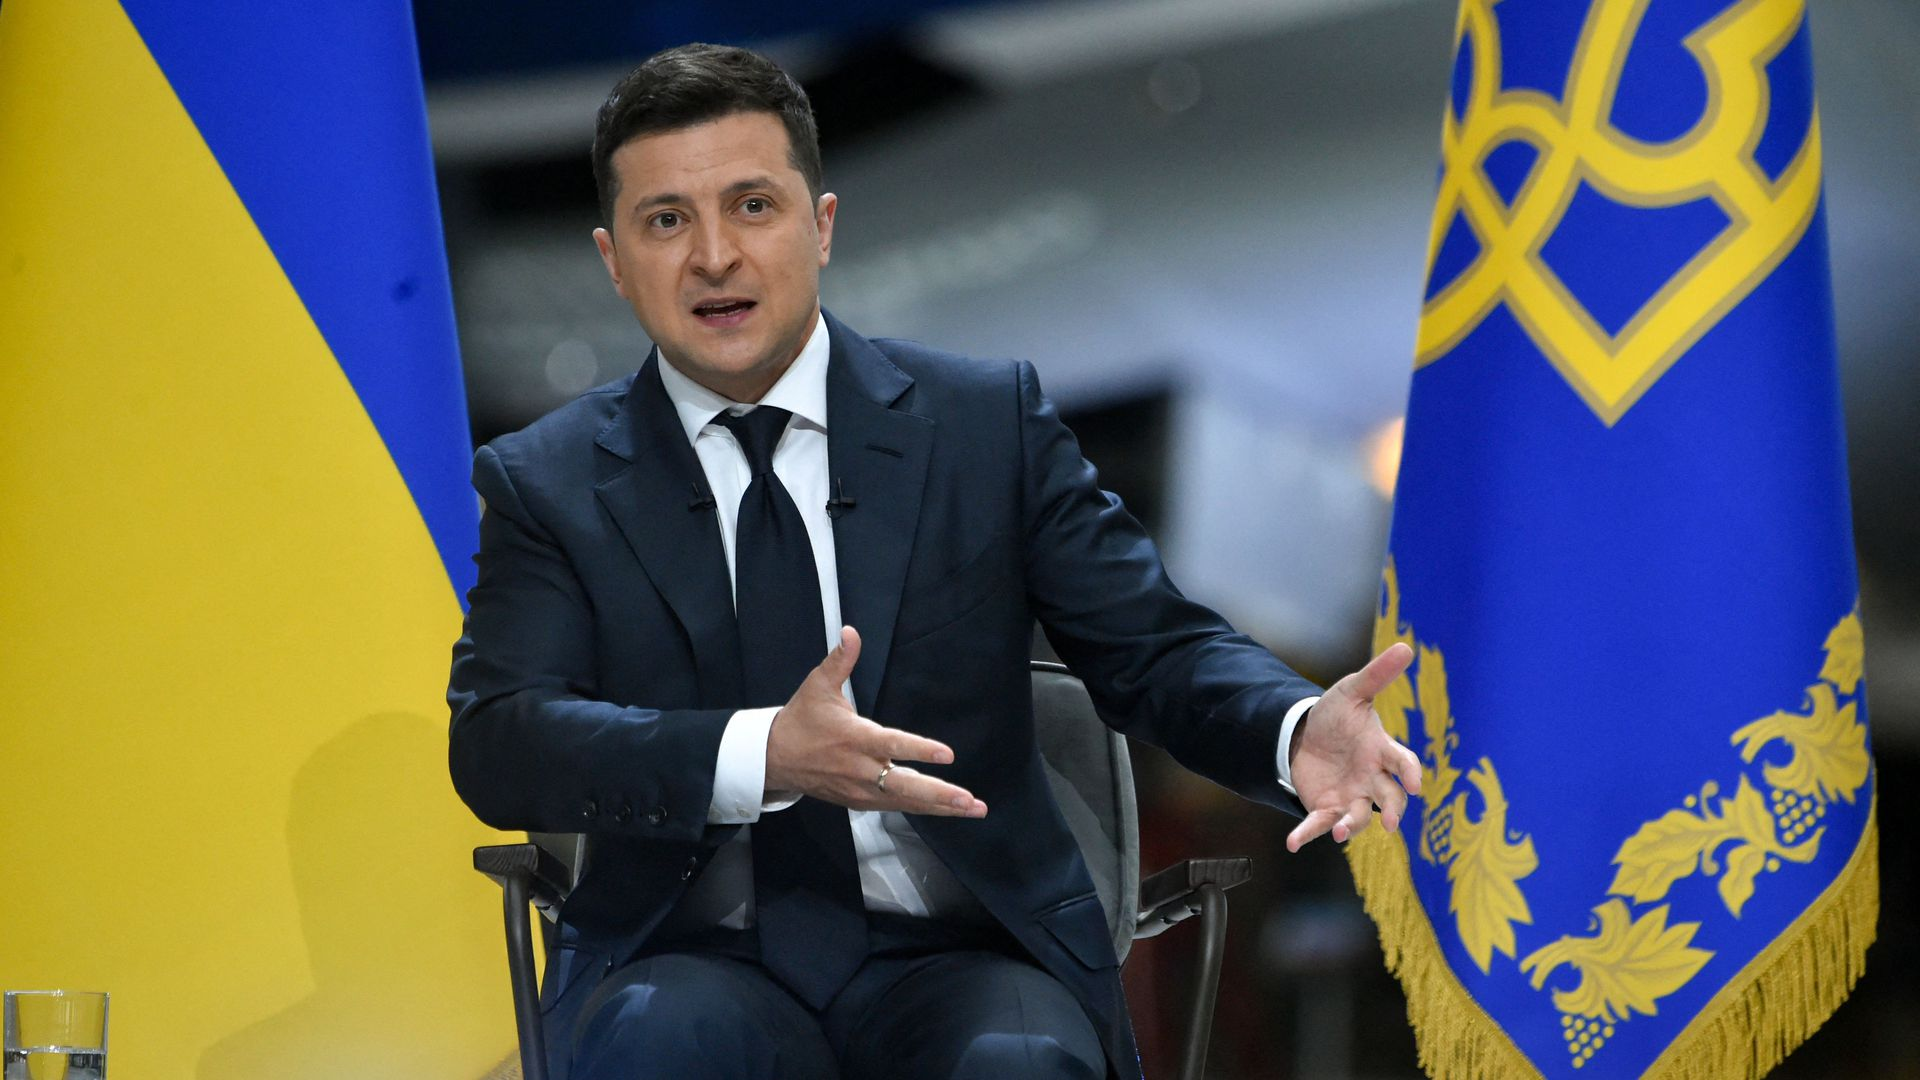 """Zelensky Disappointed With Biden, Hopes It's All Washington's """"Master Plan"""""""